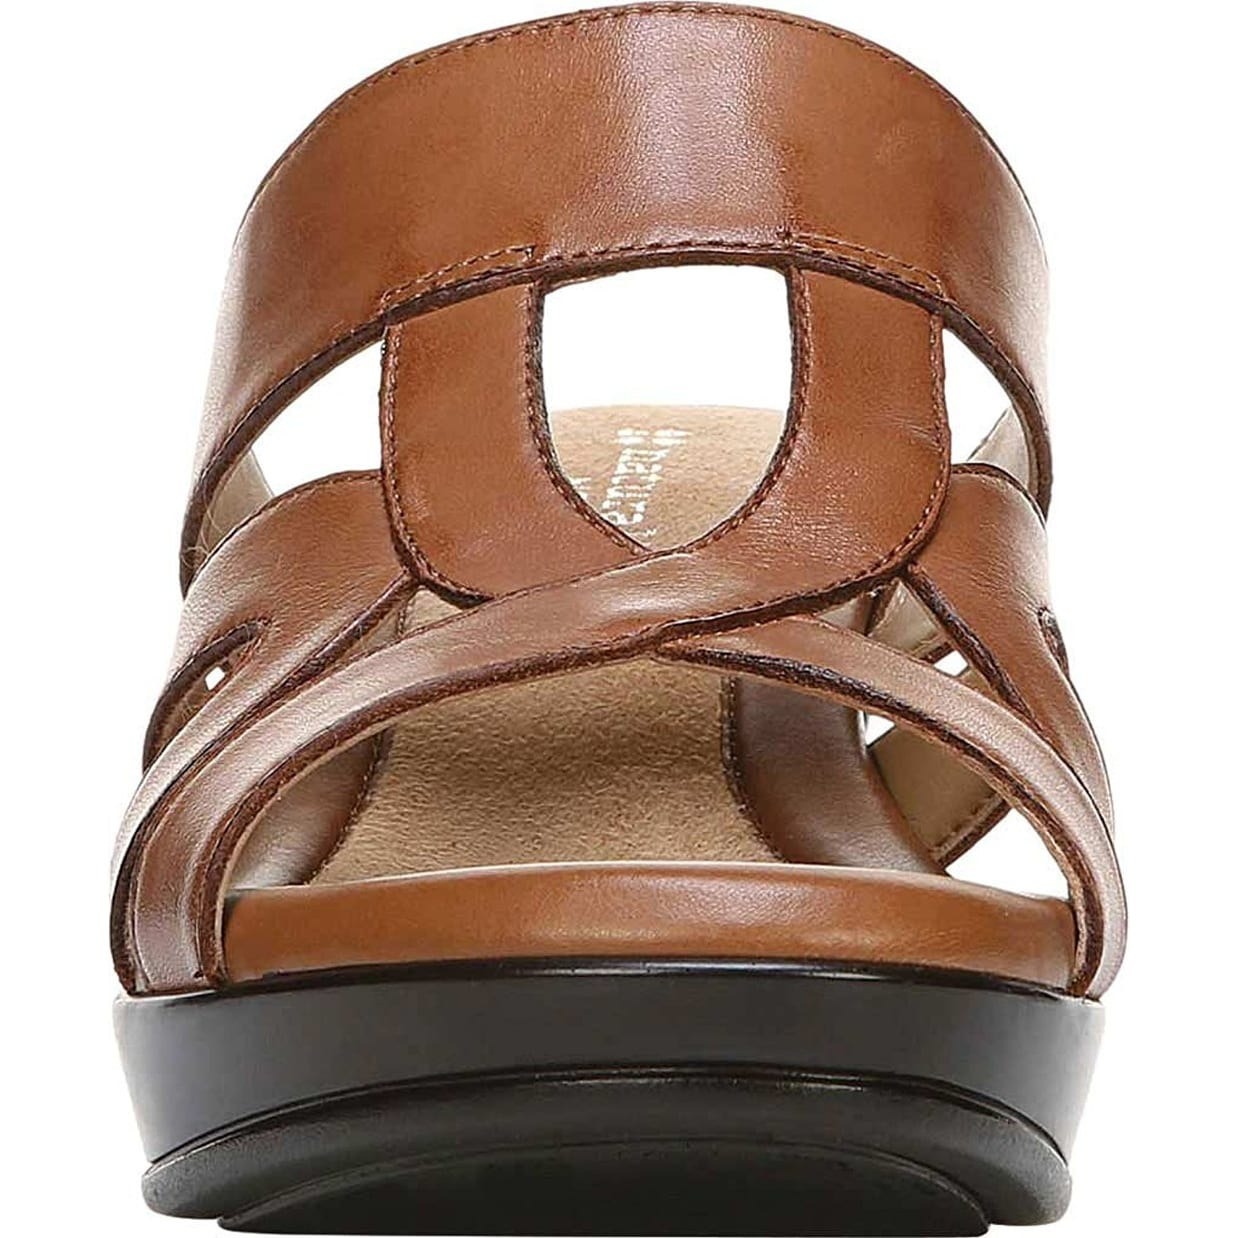 7e16ea35794d Shop Naturalizer Womens Vanity Leather Open Toe Casual Platform Sandals -  Free Shipping Today - Overstock - 21859334